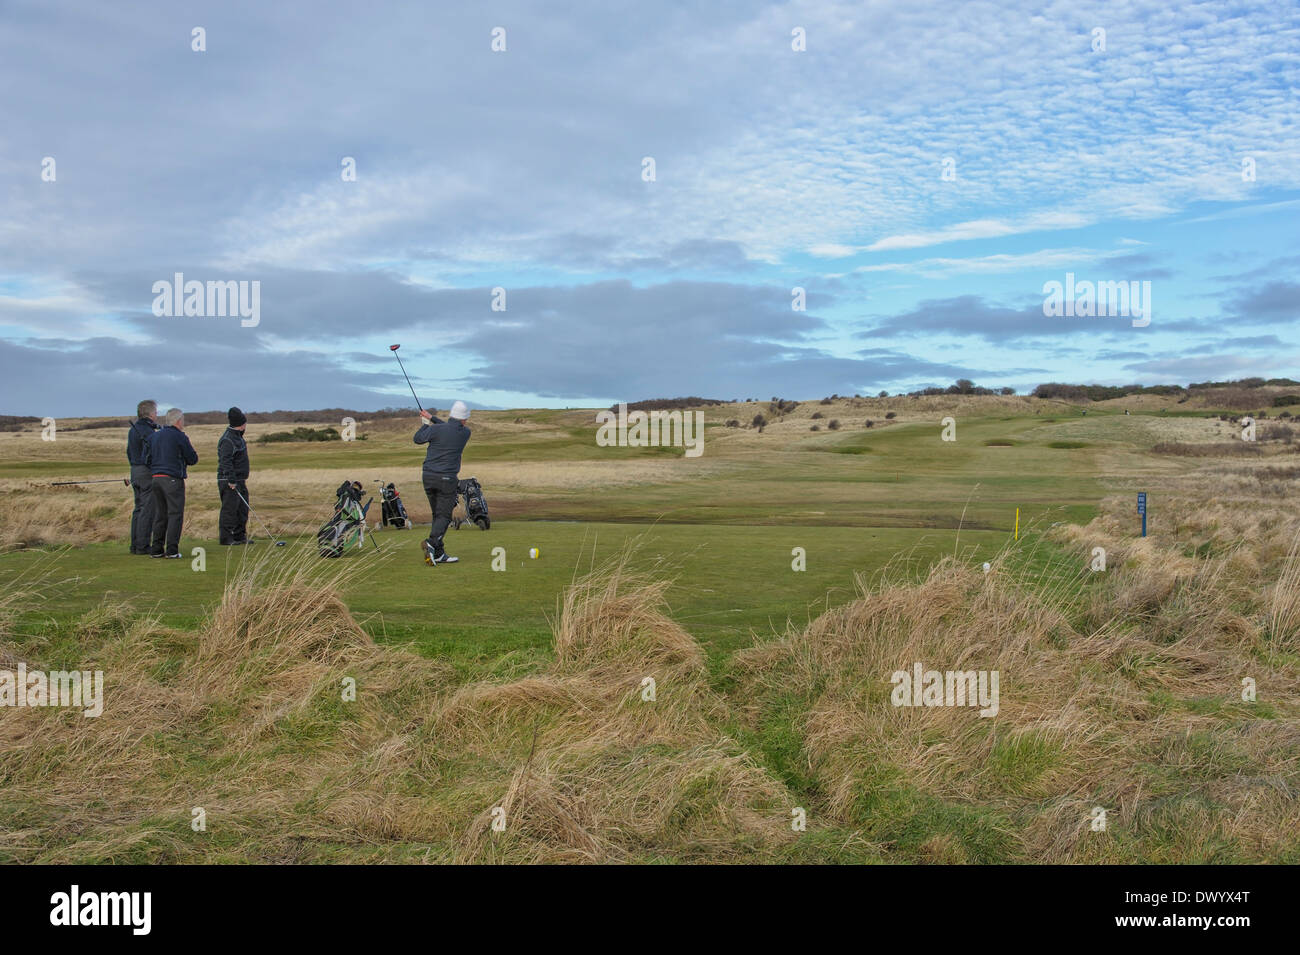 People playing golf at Luffness links course at Gullane, East Lothian, Scotland. - Stock Image